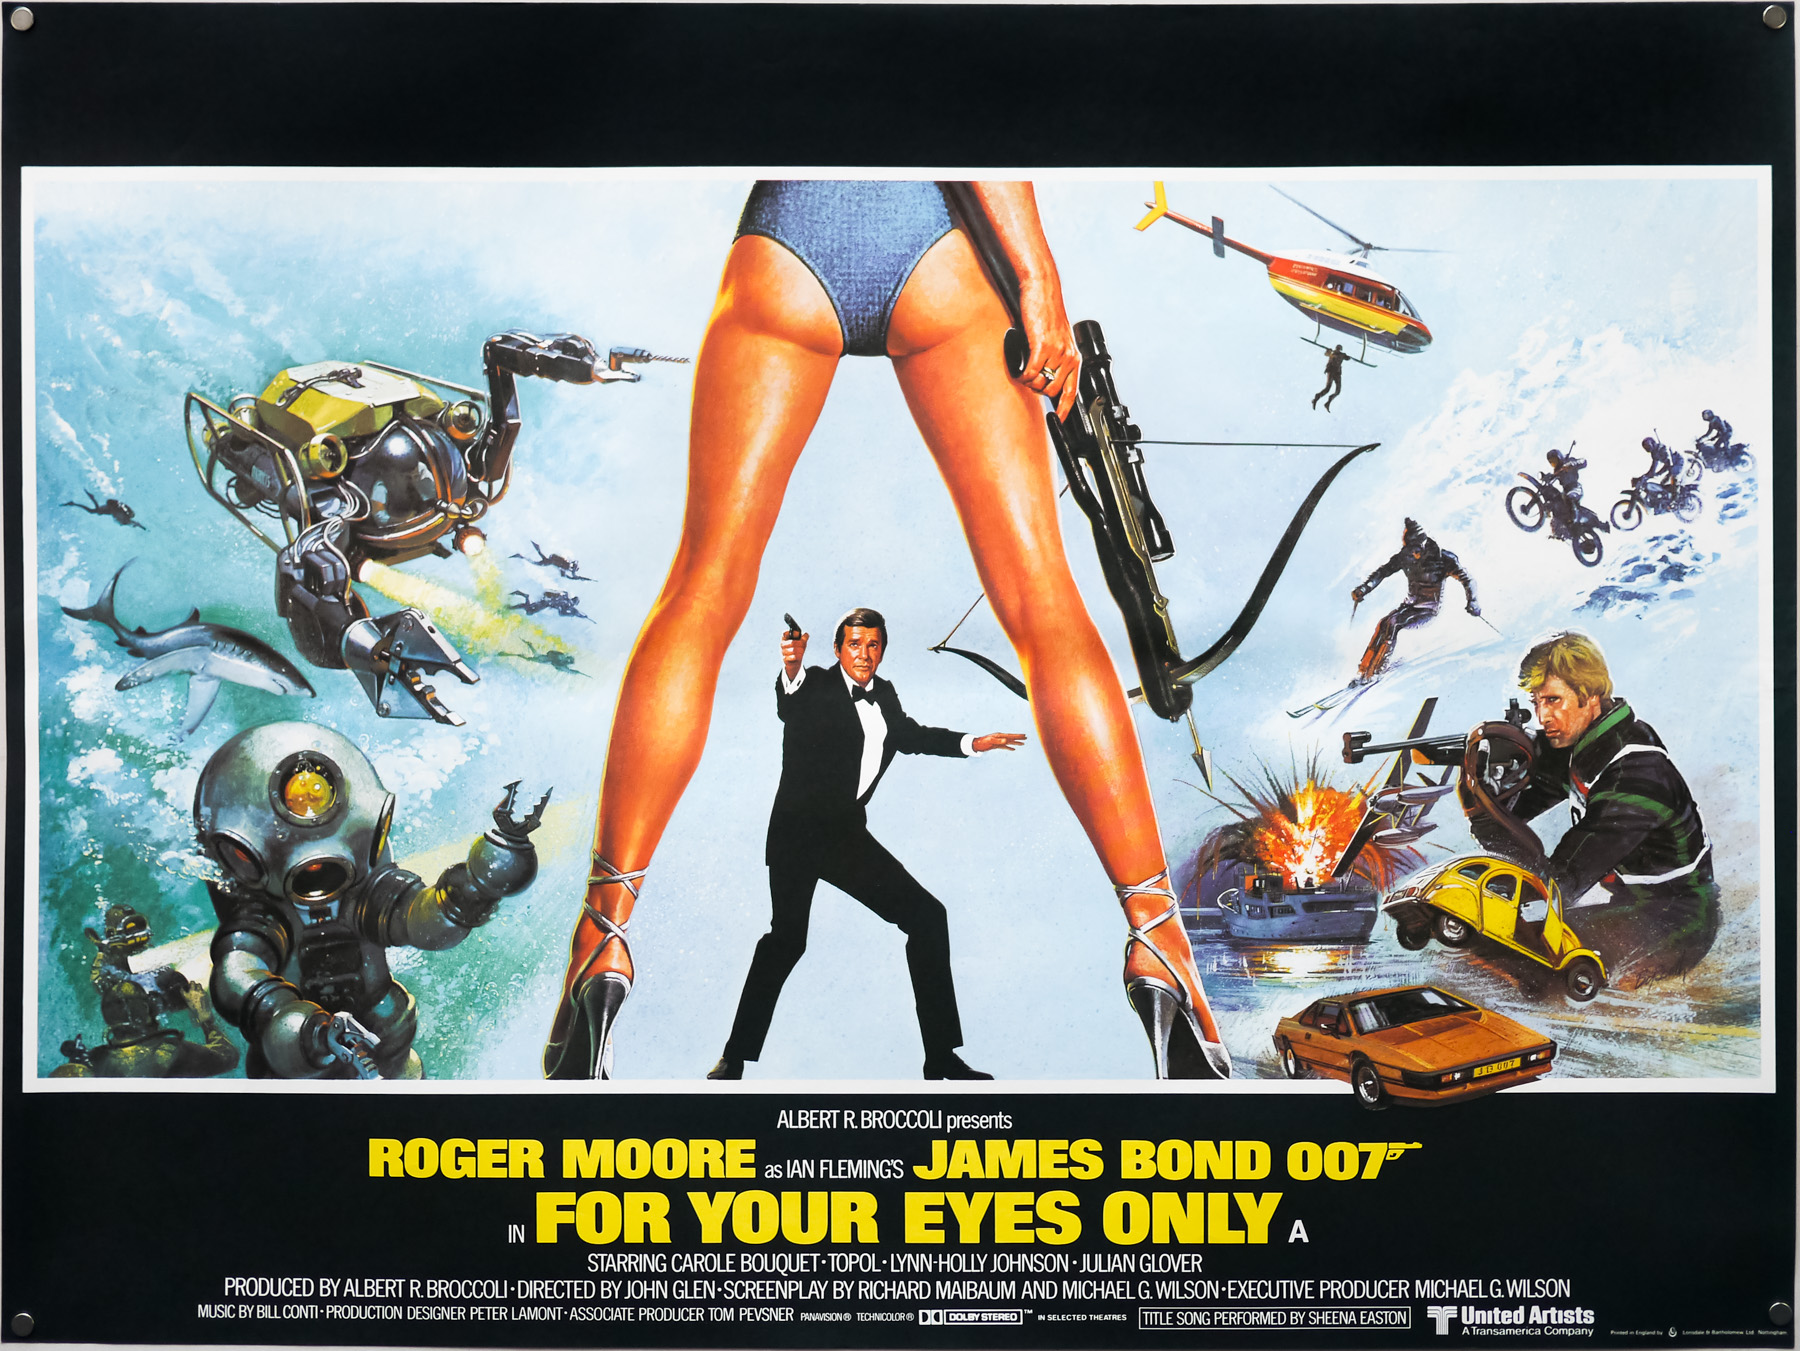 The UK quad for For Your Eyes Only, designed by Eric Pulford and painted by Brian Bysouth, 1981